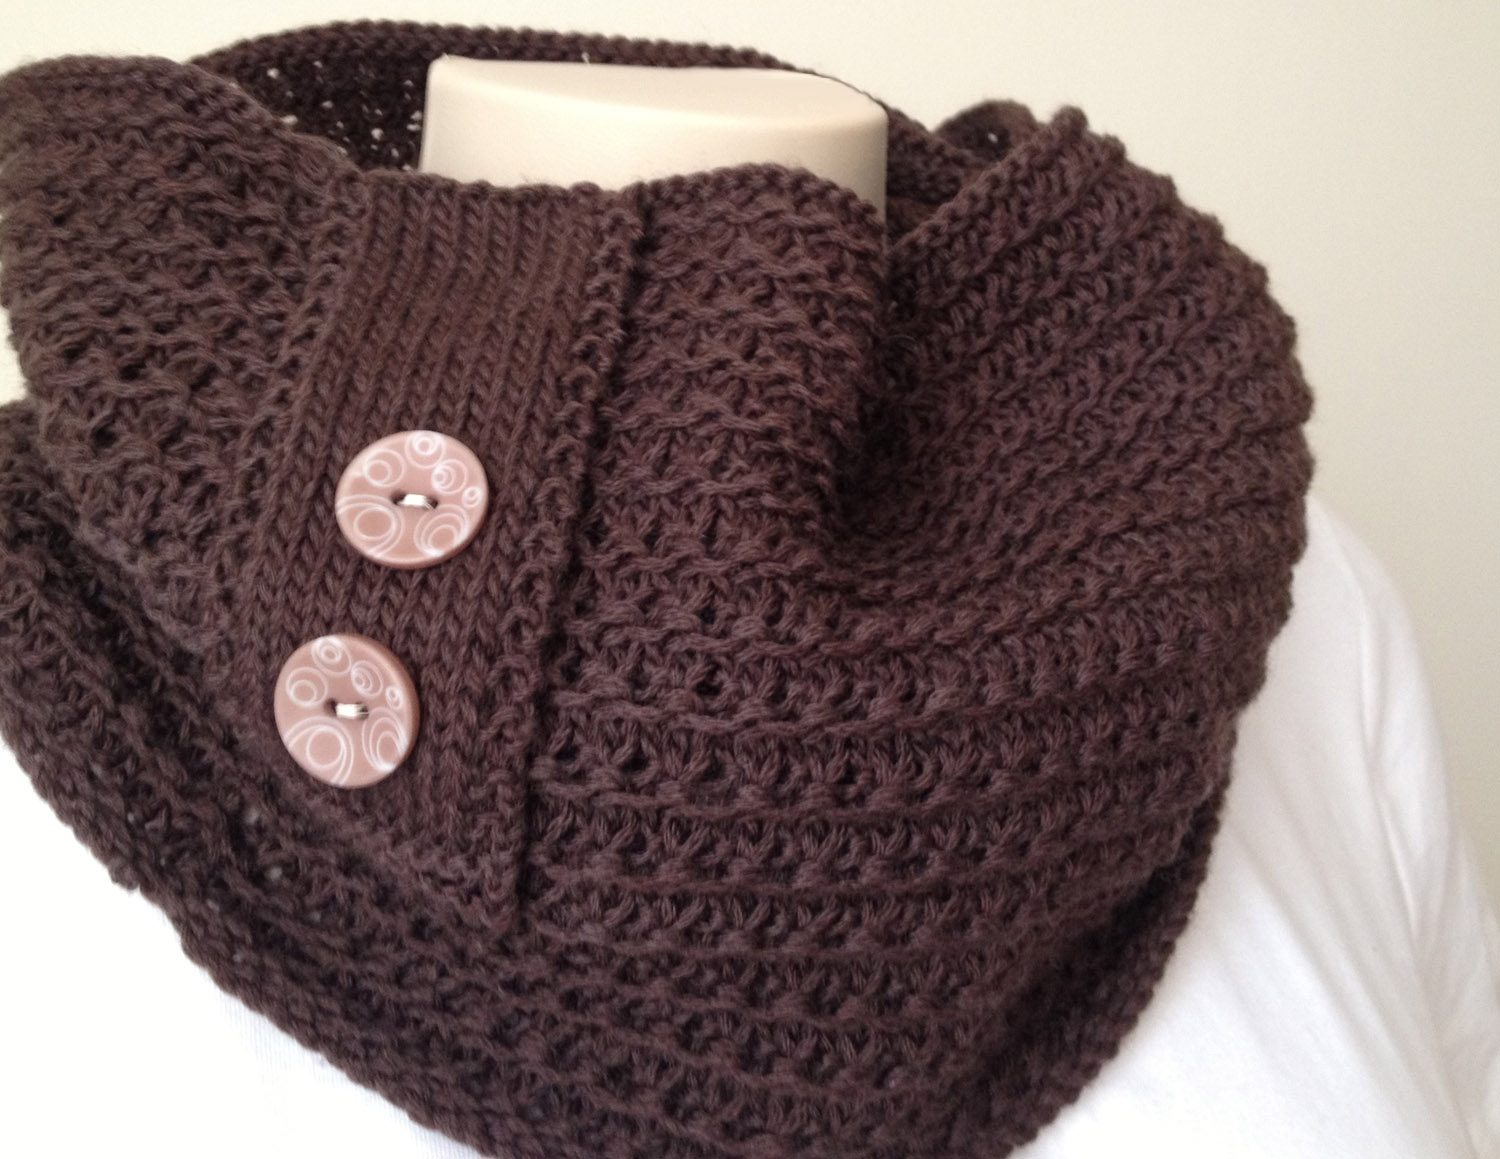 New Knitting Patterns : New knitting pattern cowl : Chocolate Cowl Deux Brins de Maille